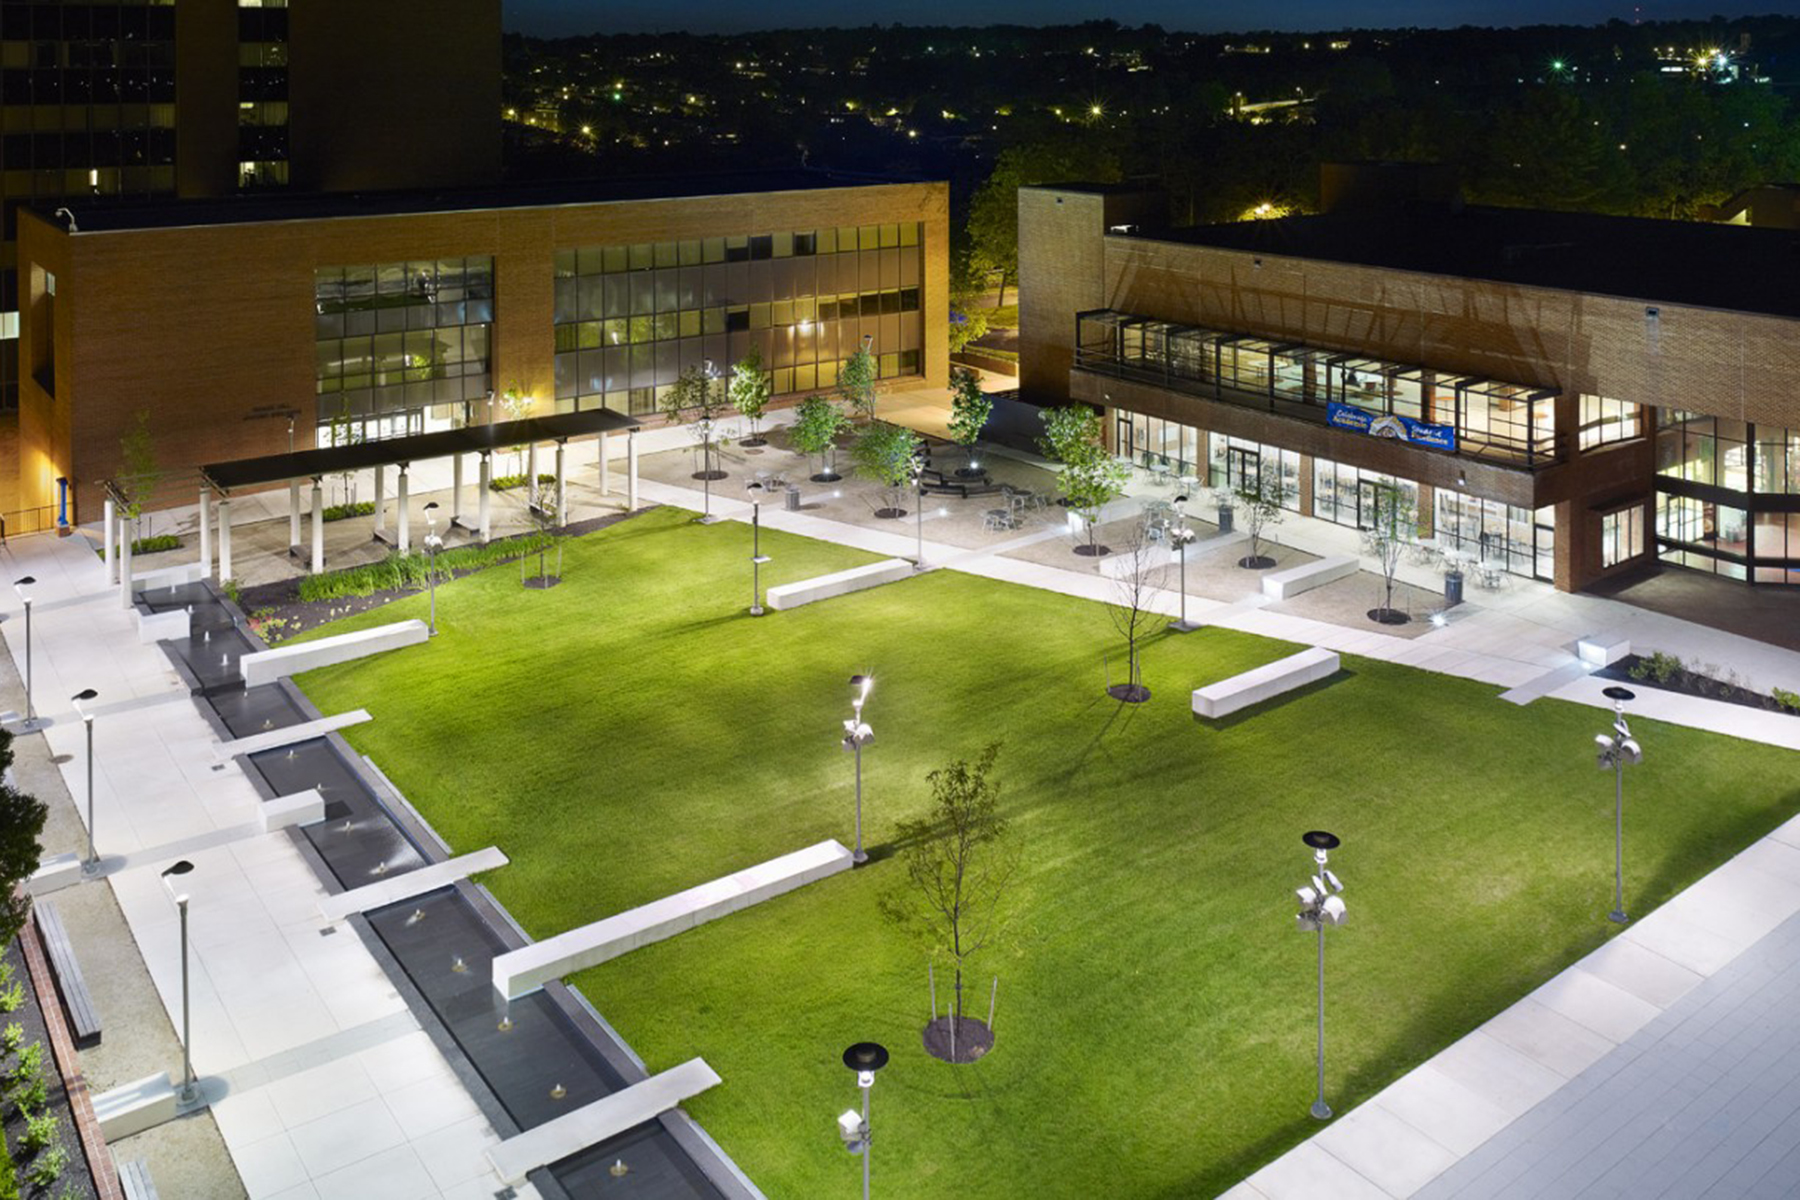 http://news.uic.edu/files/2015/12/landscaped-quad.jpg